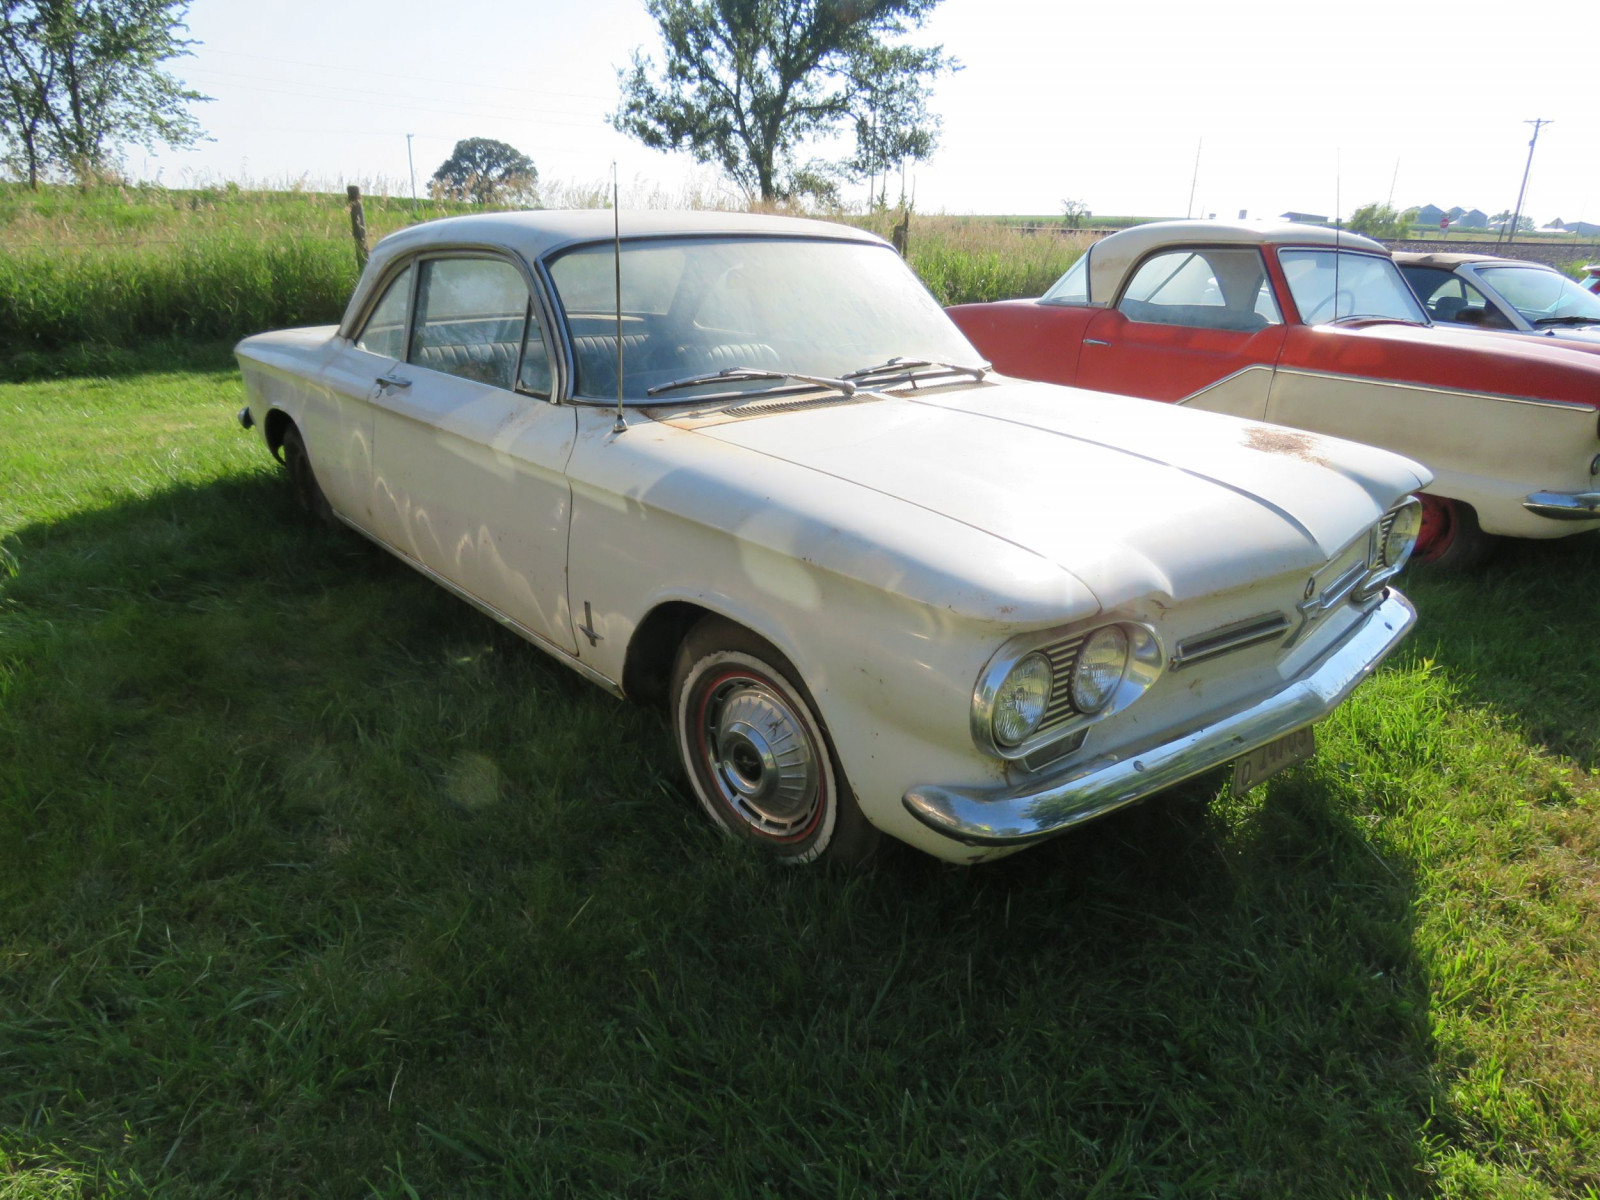 1962 Chevrolet Corvair Coupe - Image 3